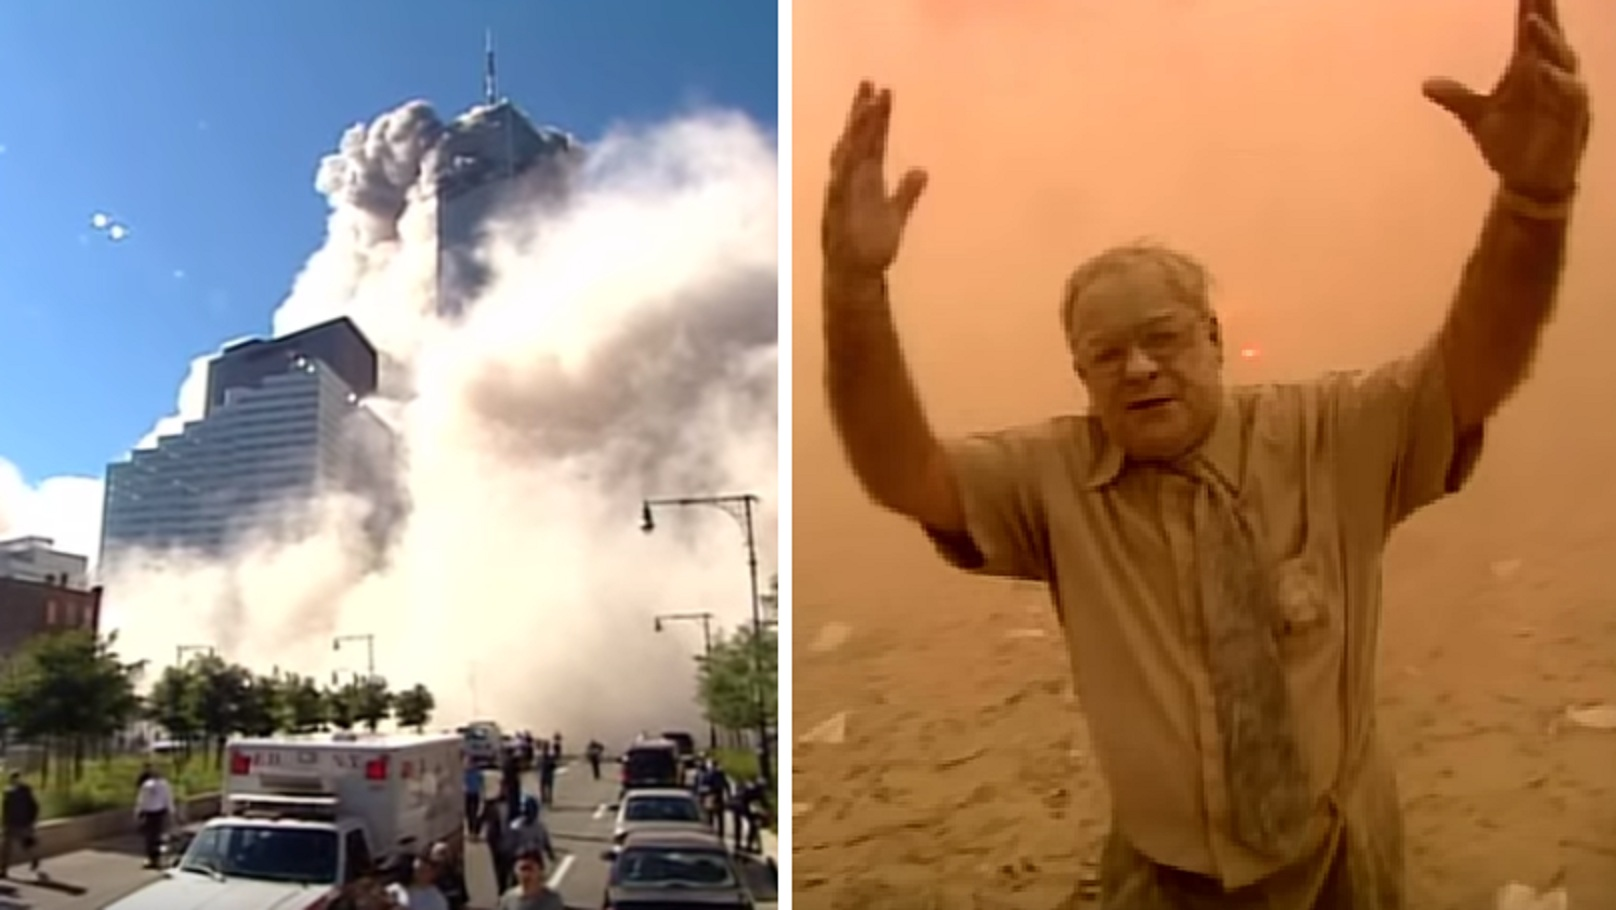 Watch: Rare Footage Shows the Horrifying Aftermath of 9/11 Attack